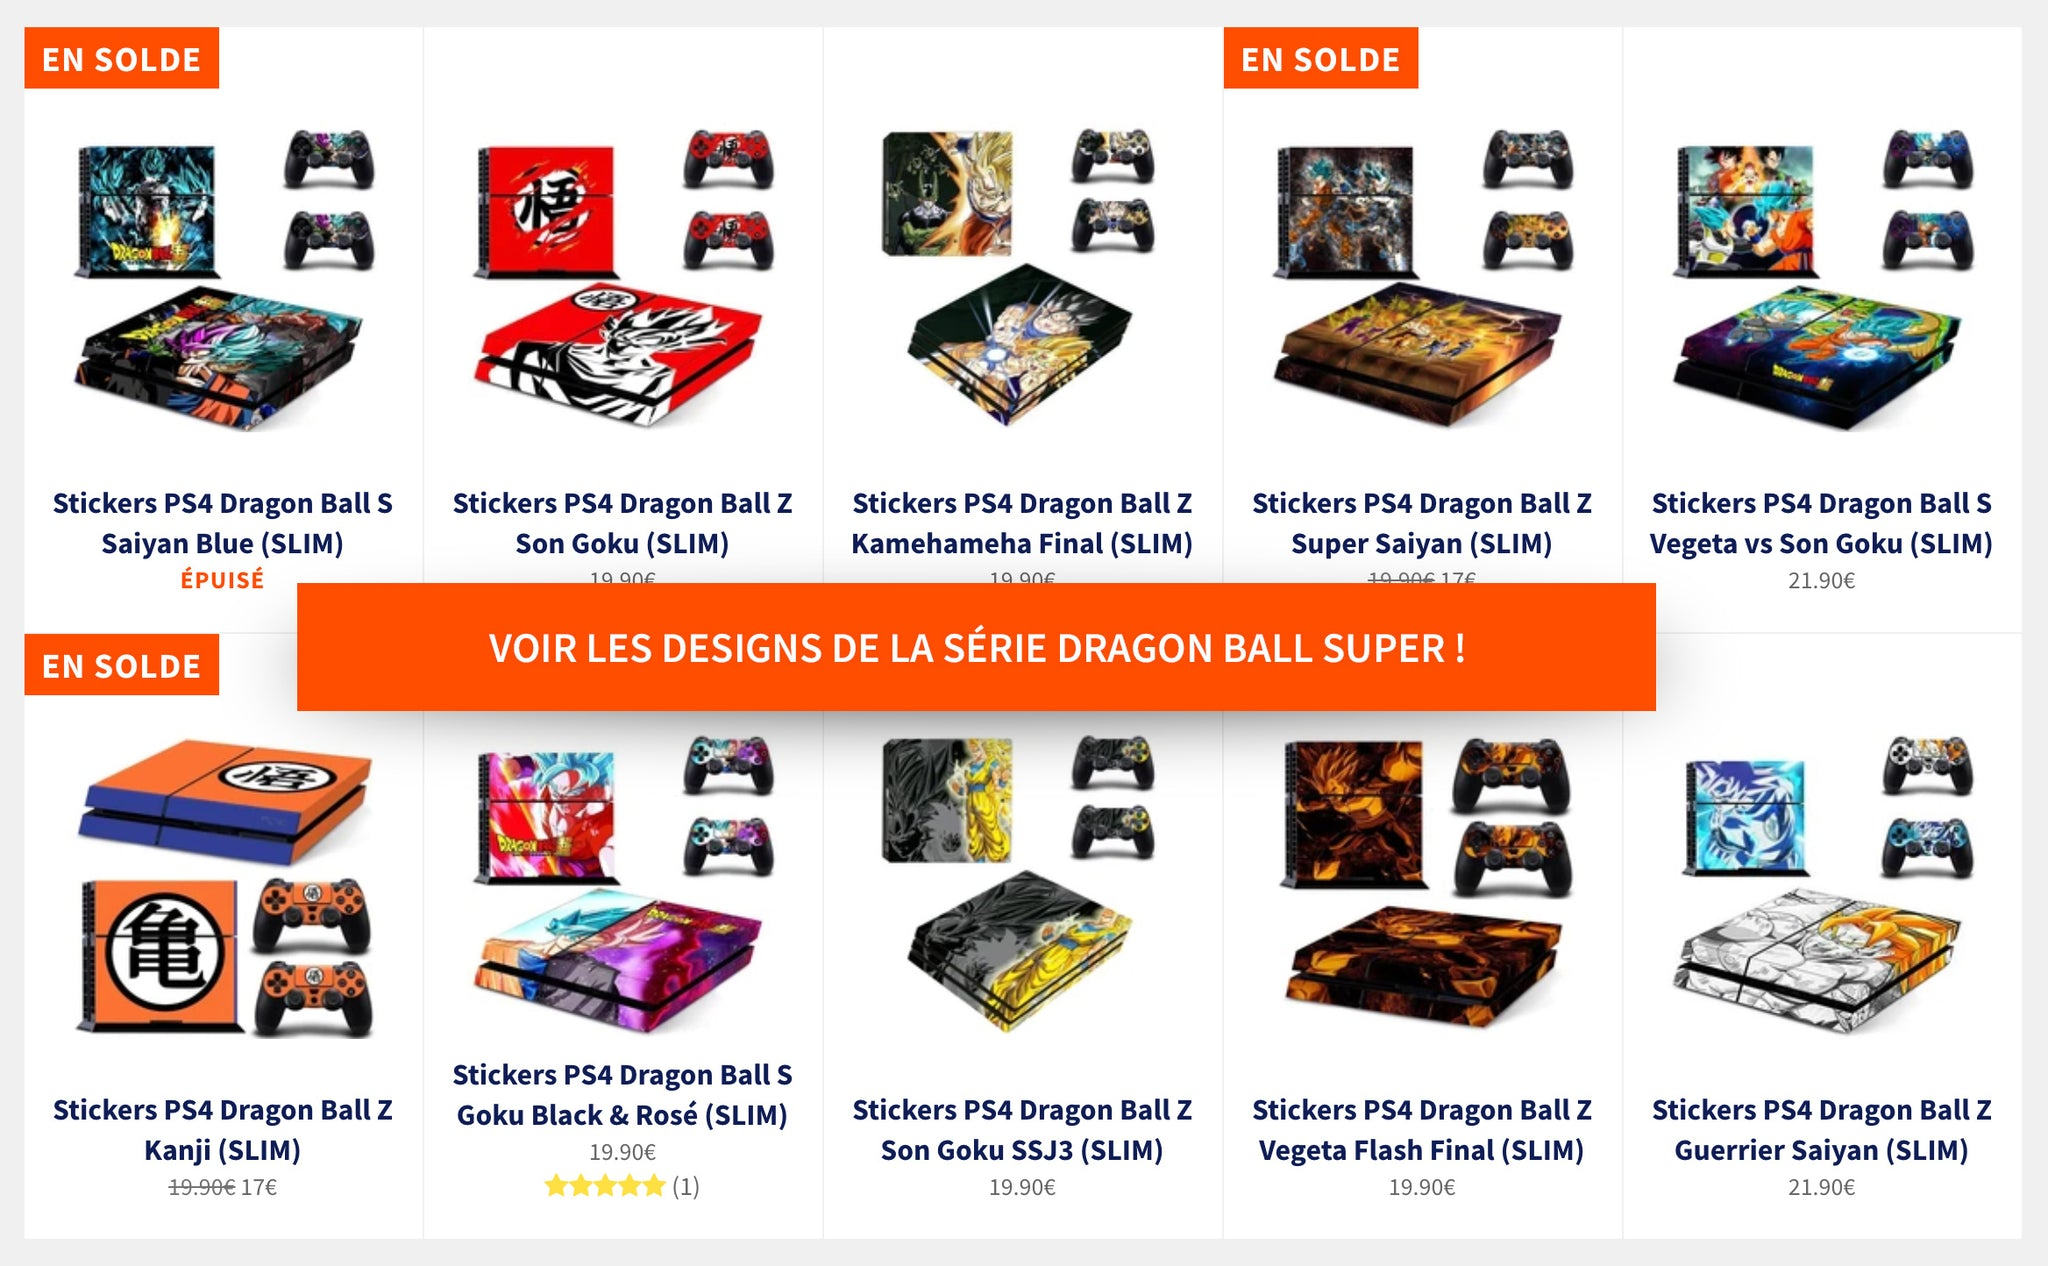 Stickers PS4 Dragon Ball Z